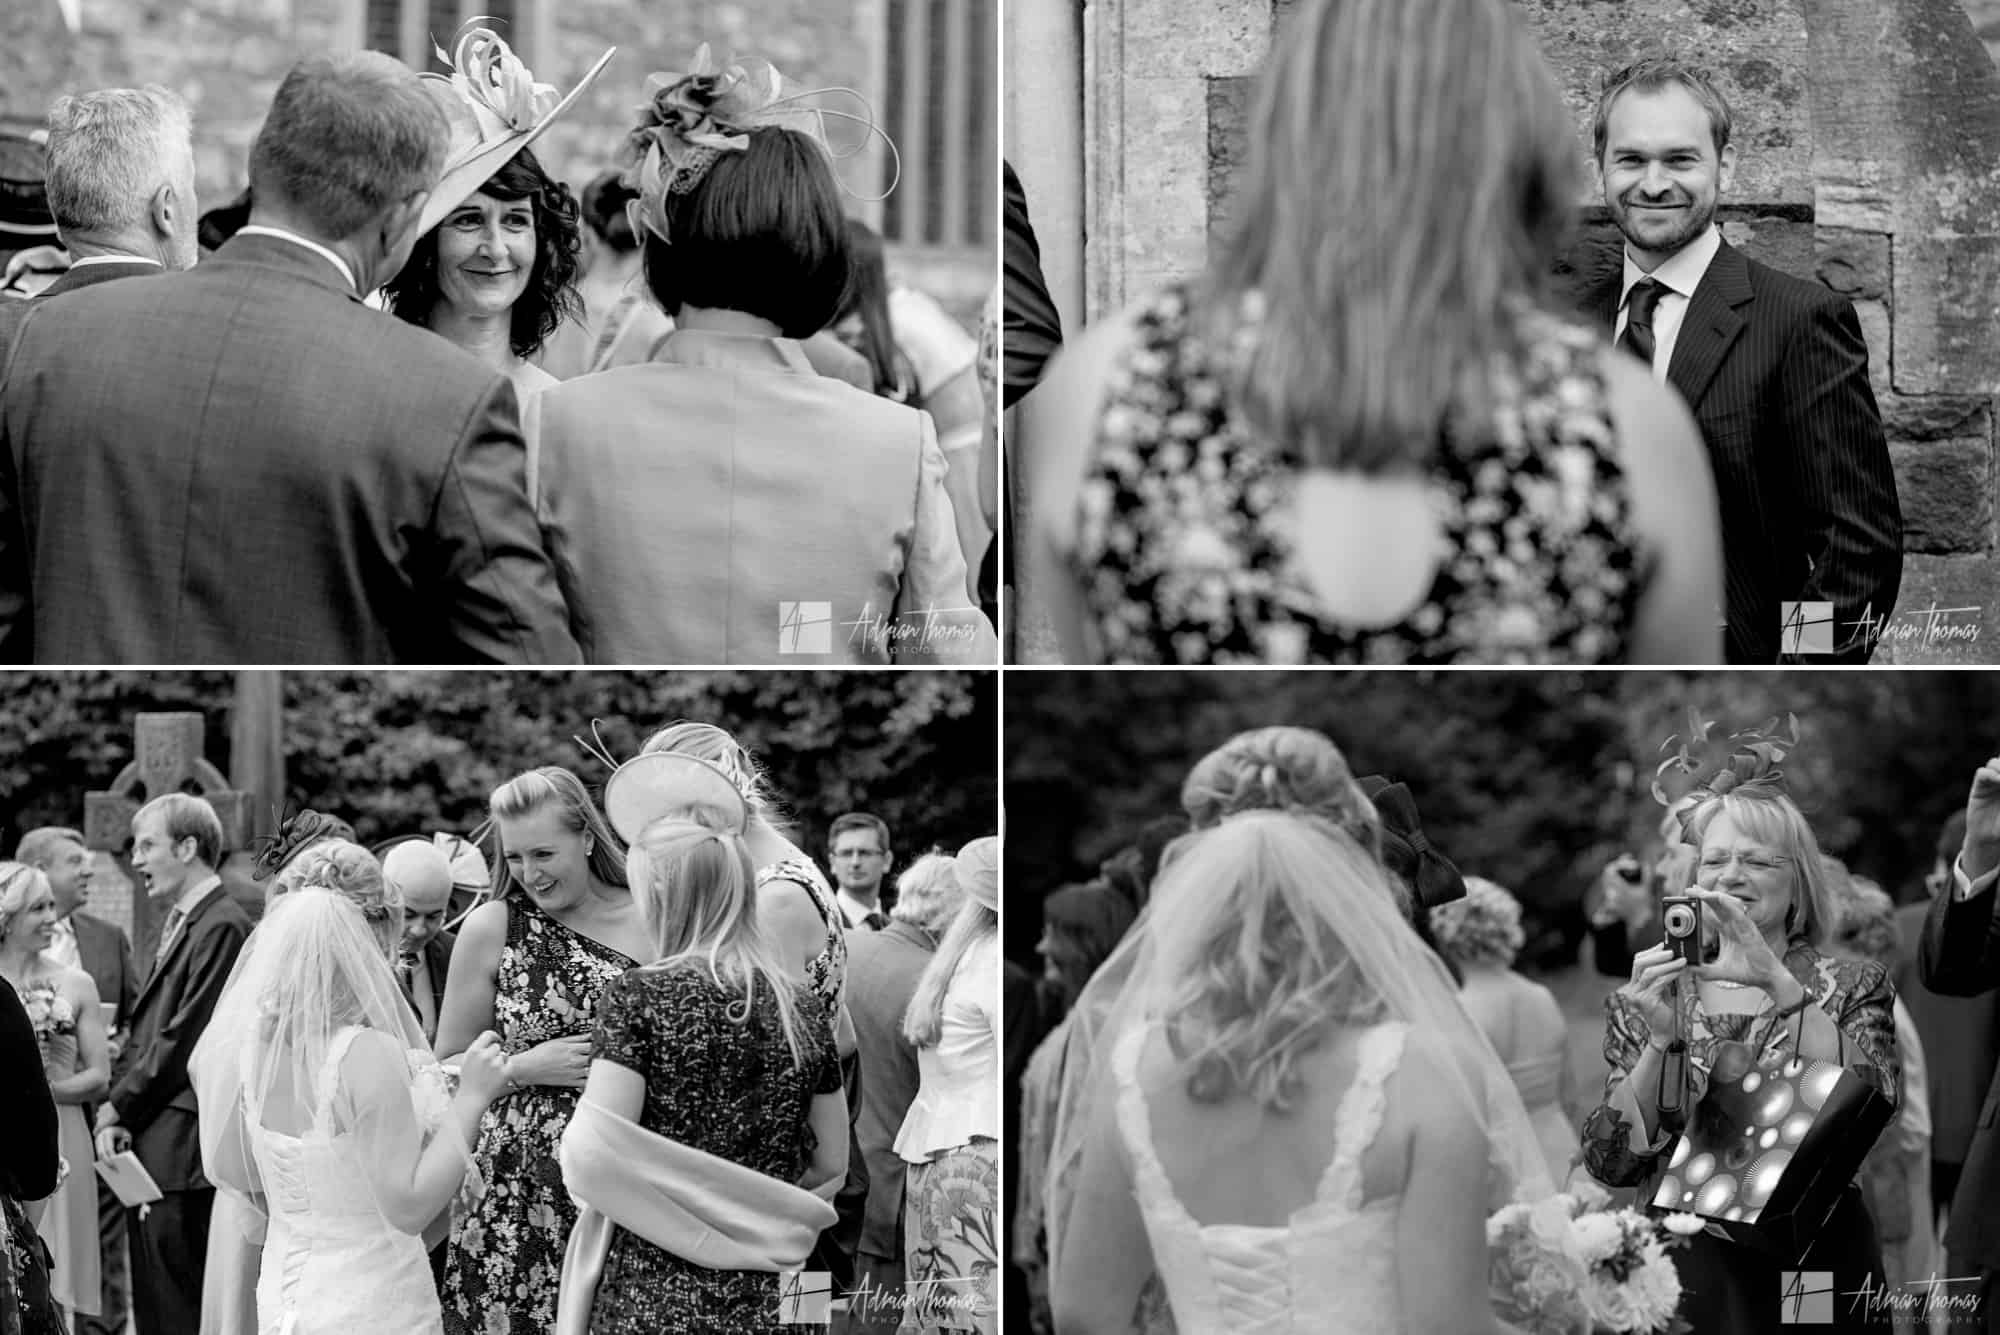 Guest mingle with bride outside church.